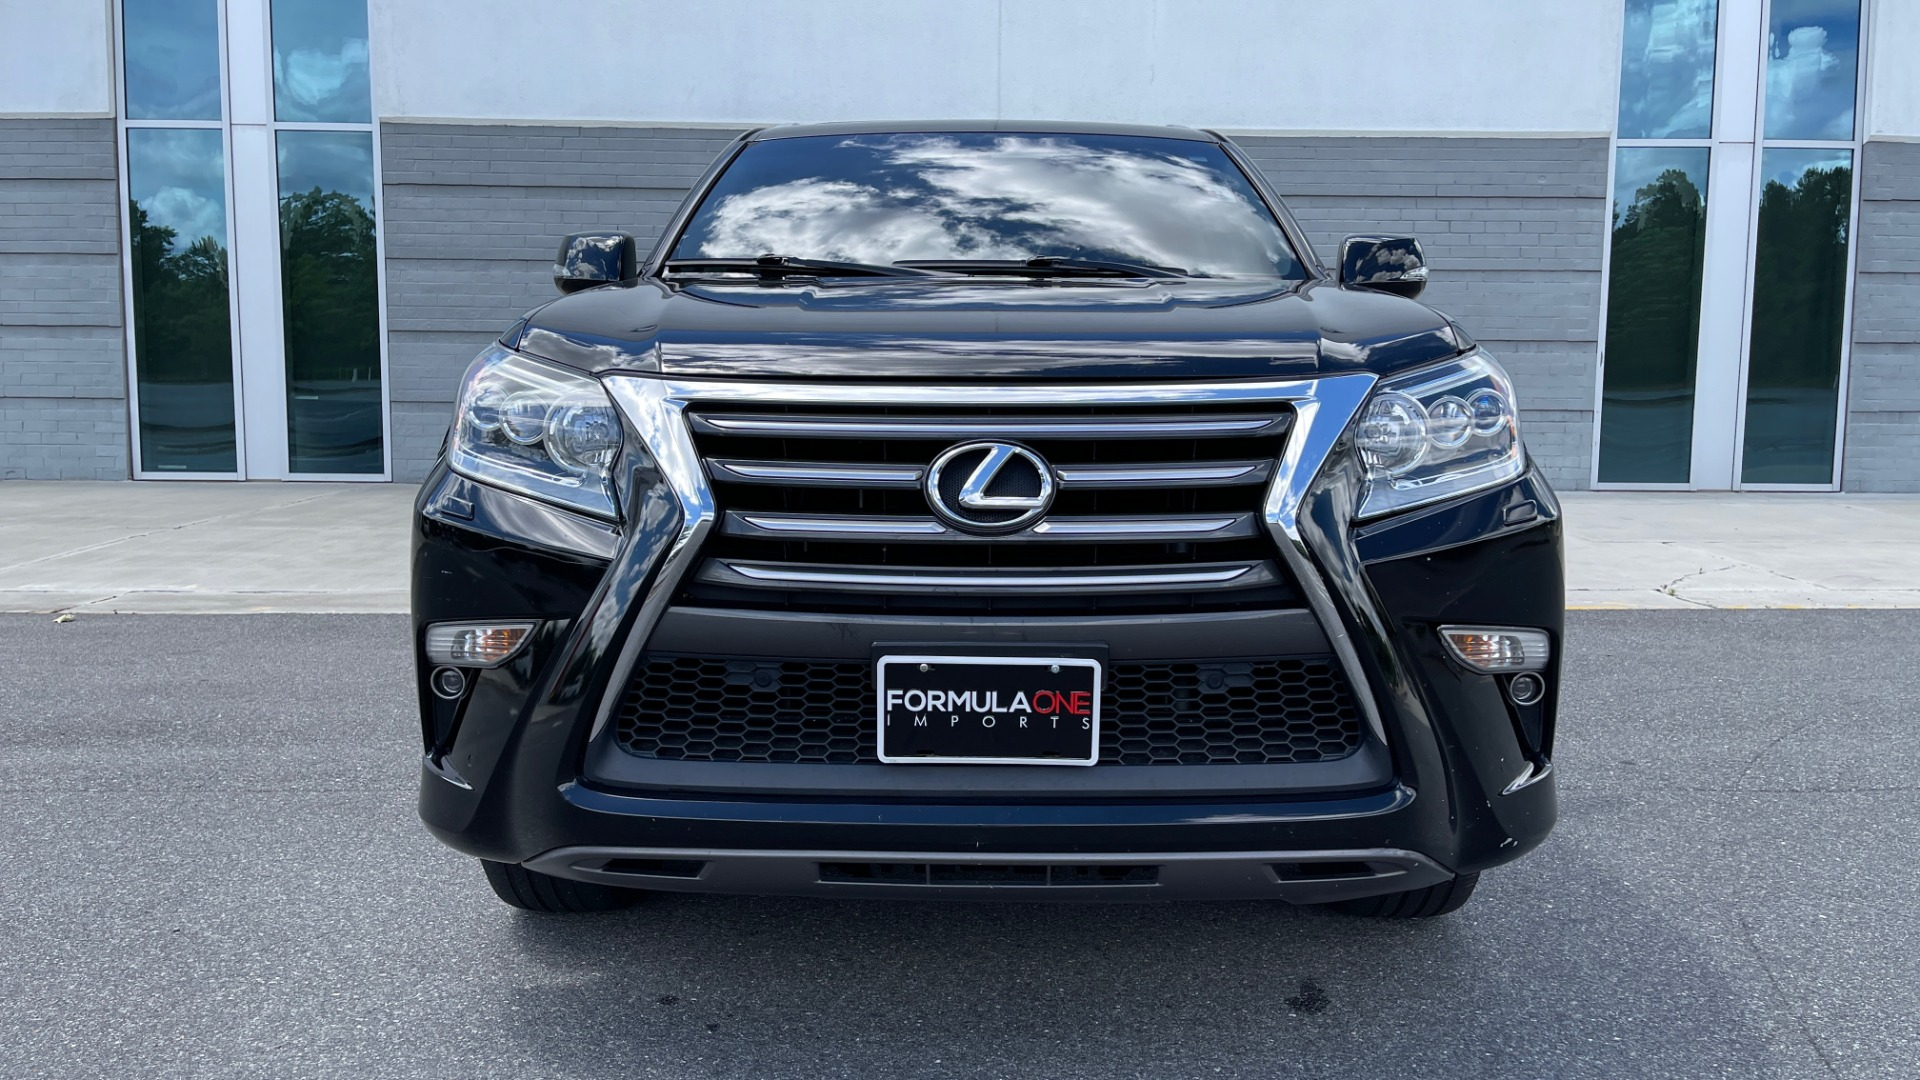 Used 2017 Lexus GX GX 460 LUXURY / AWD / NAV / SUNROOF / MARK LEV SND / REARVIEW for sale $37,995 at Formula Imports in Charlotte NC 28227 9